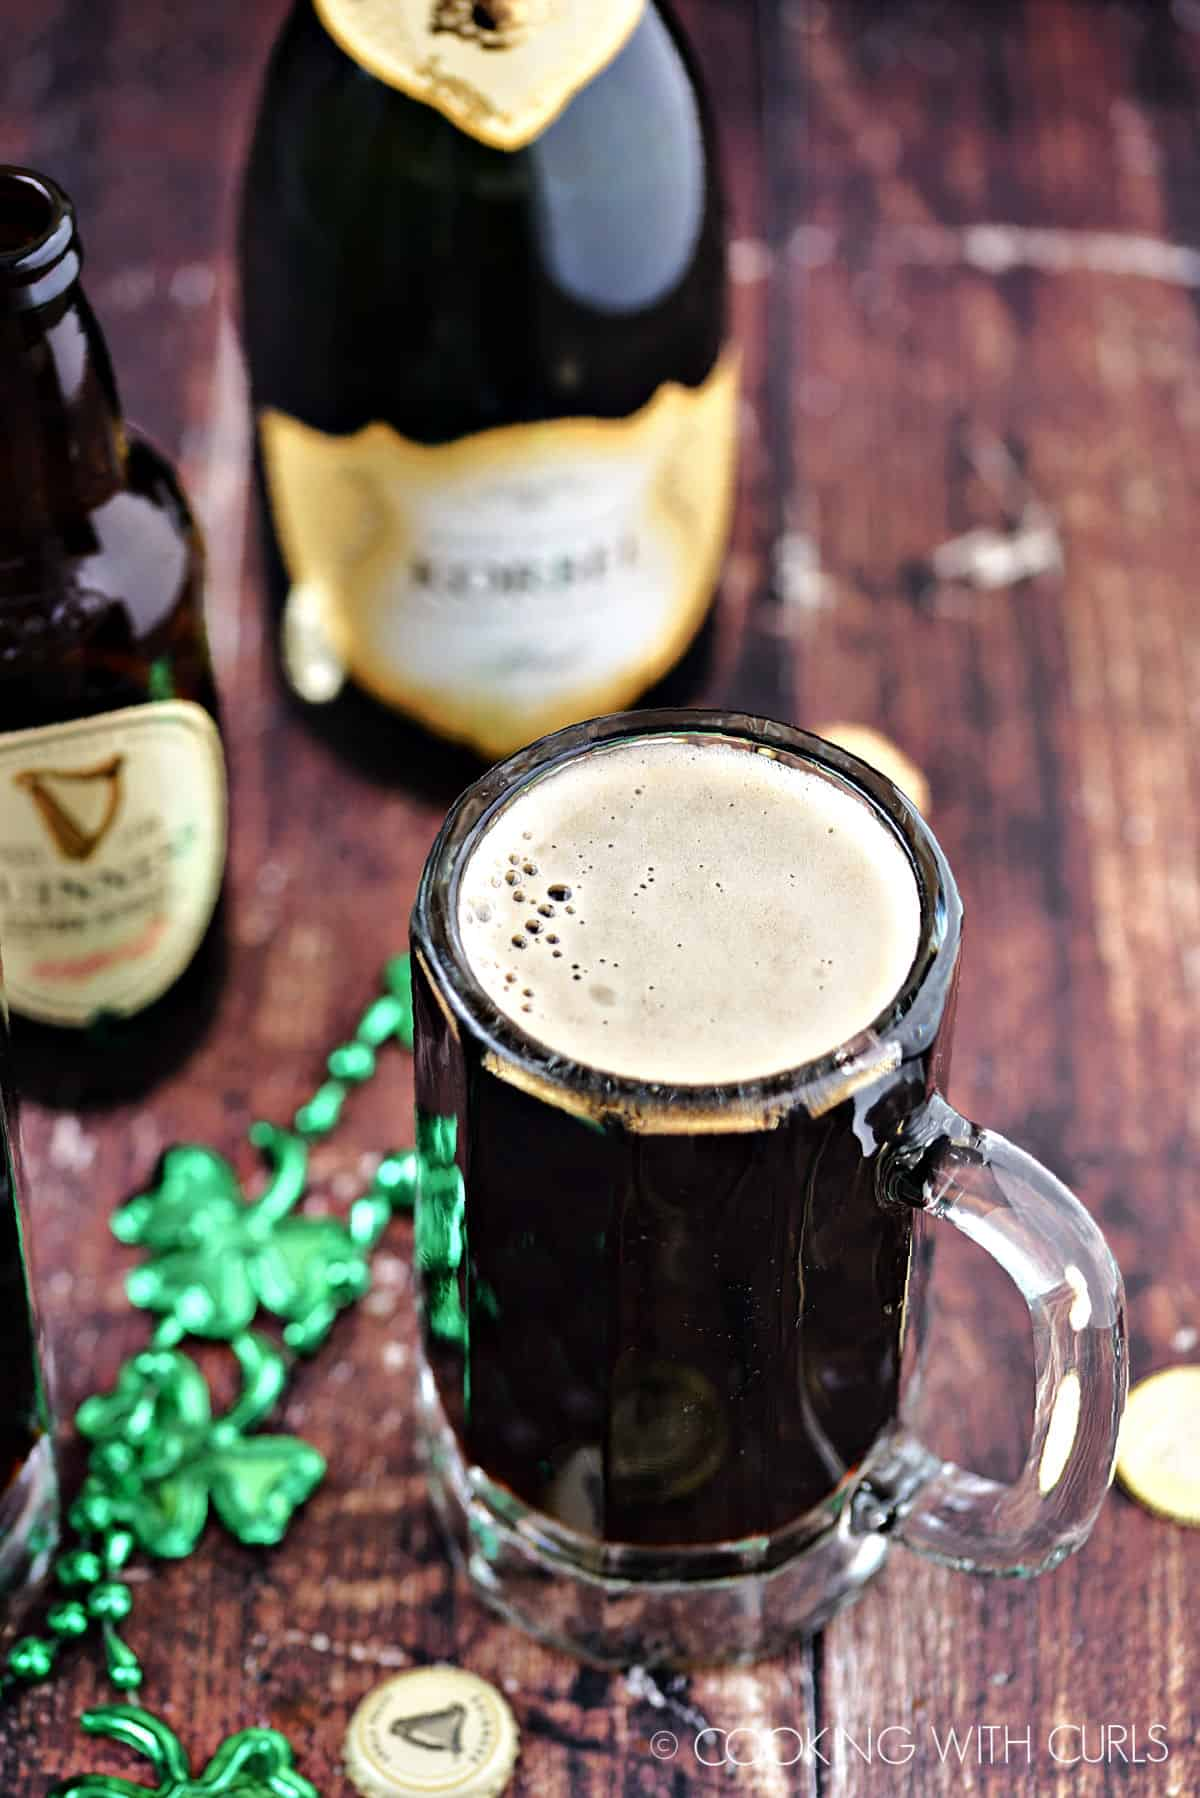 Foamy, black cocktail in a glass beer mug with bottles of Guinness and champagne in the background.